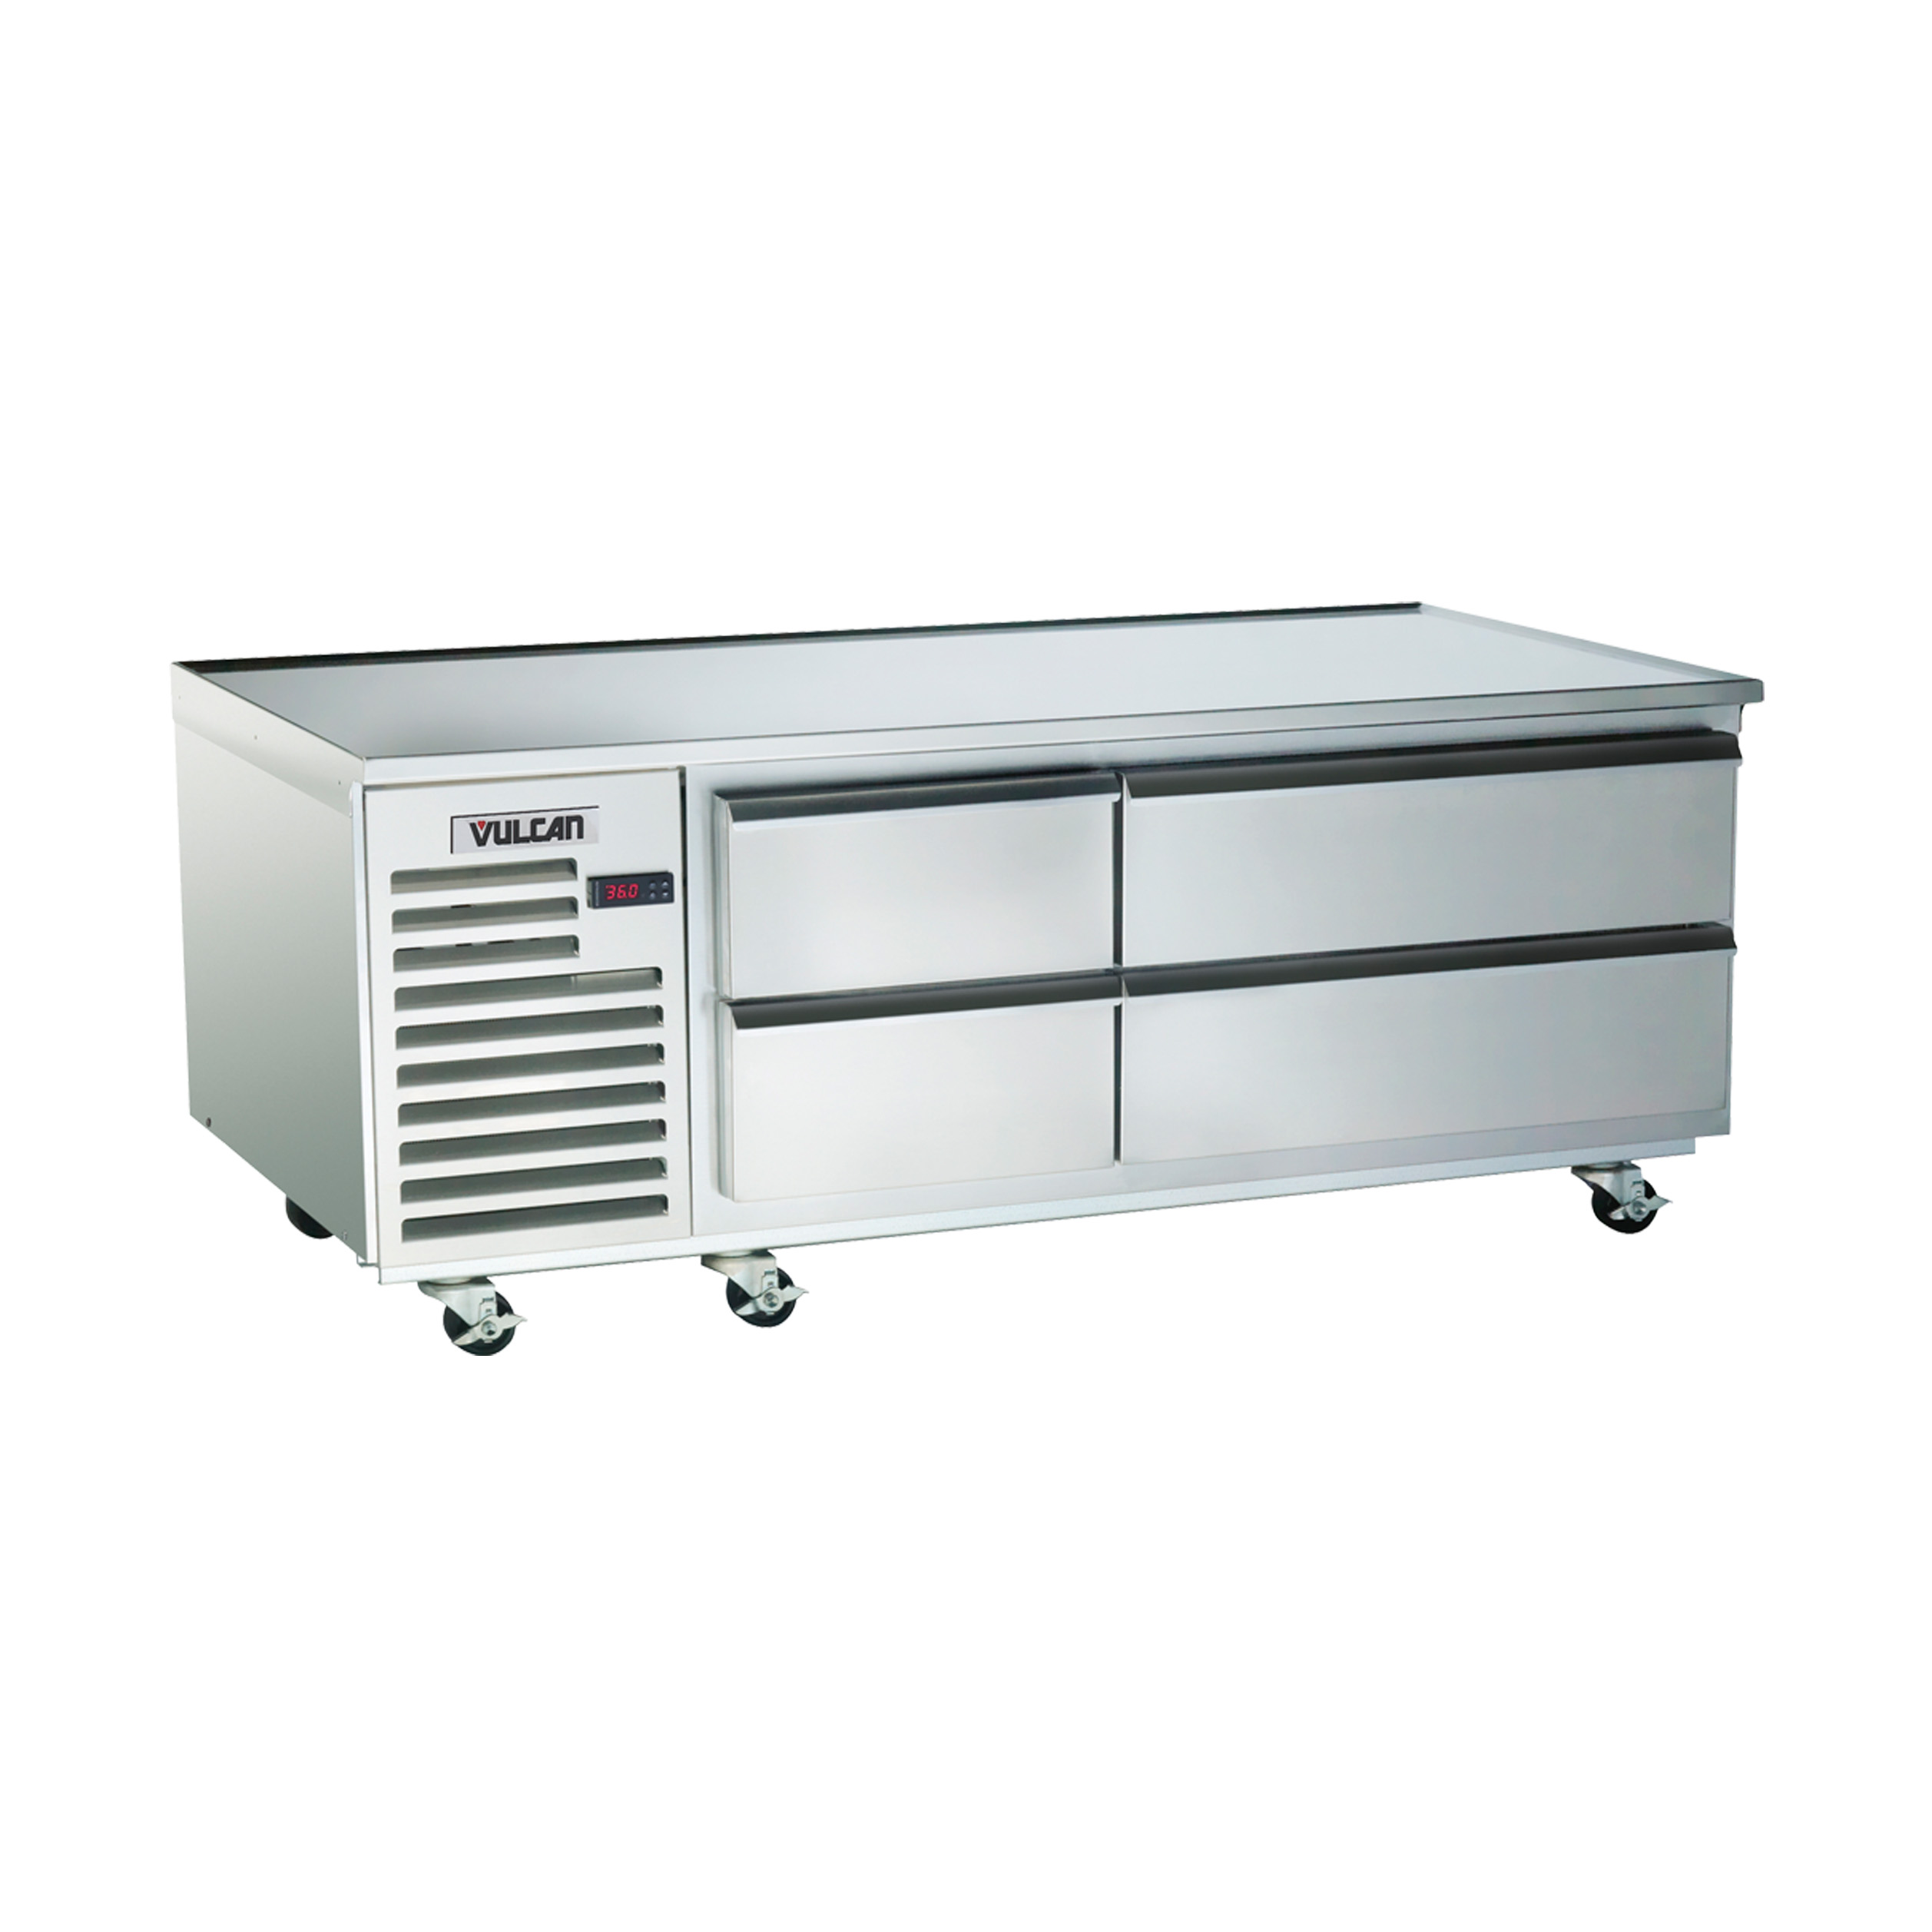 Vulcan VR96 equipment stand, refrigerated base